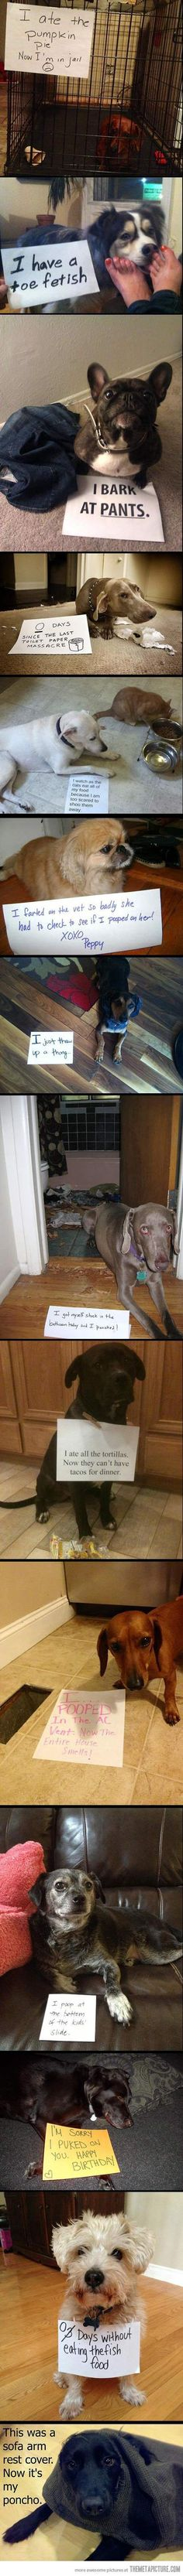 Best of Dog Shaming. love it